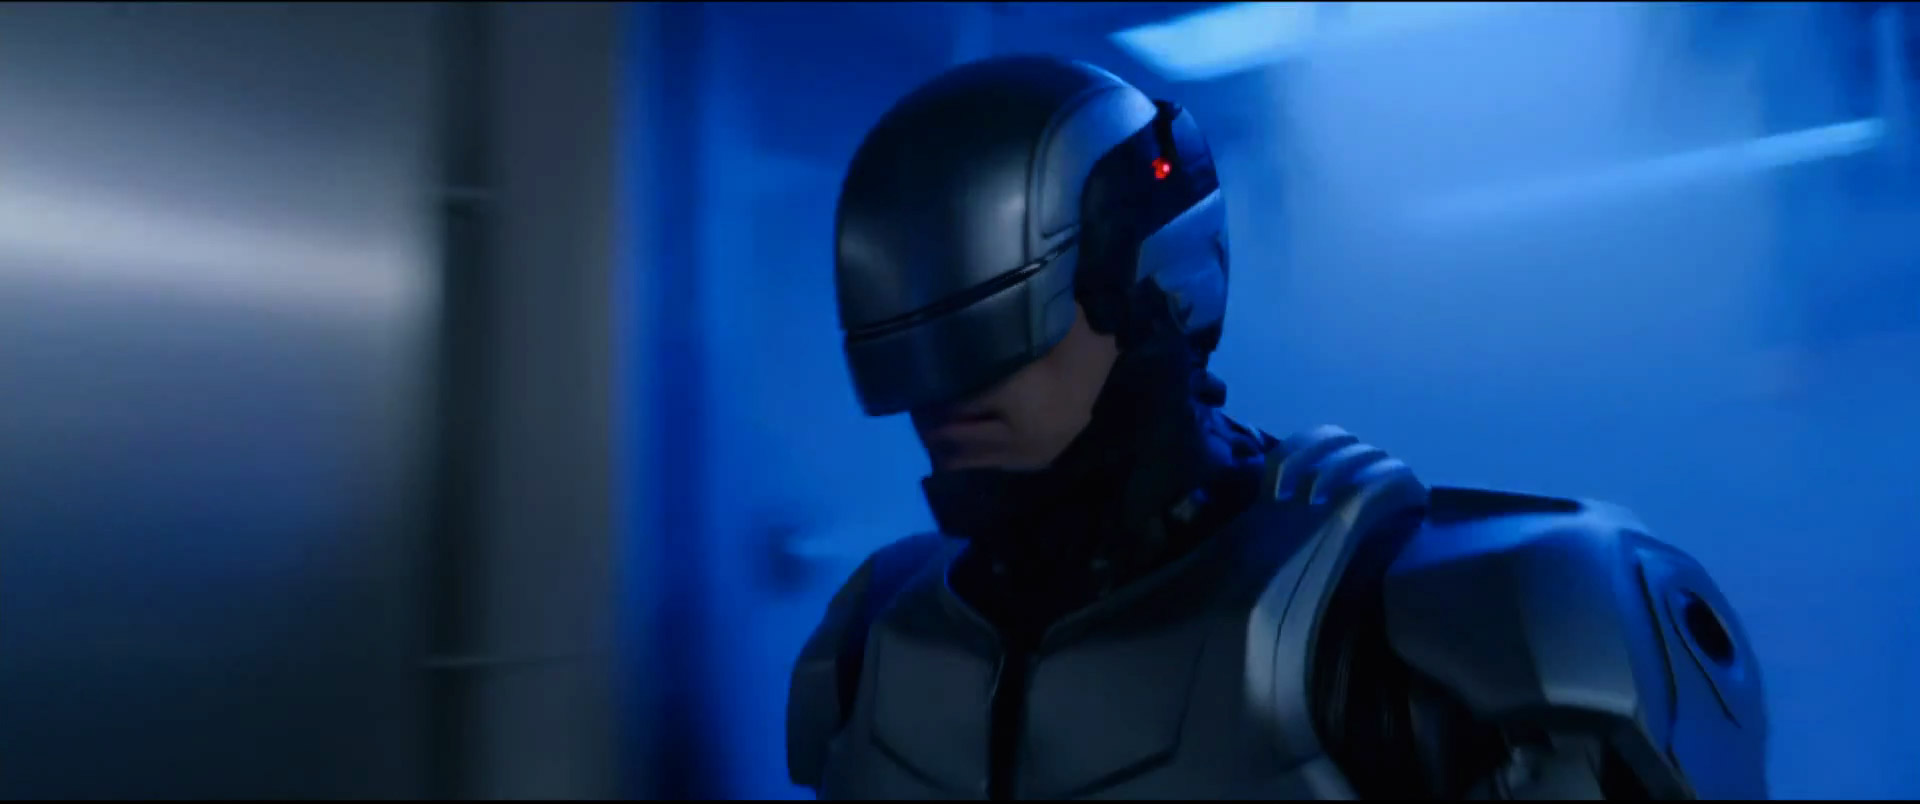 first-awesome-trailer-for-robocop-22.jpg